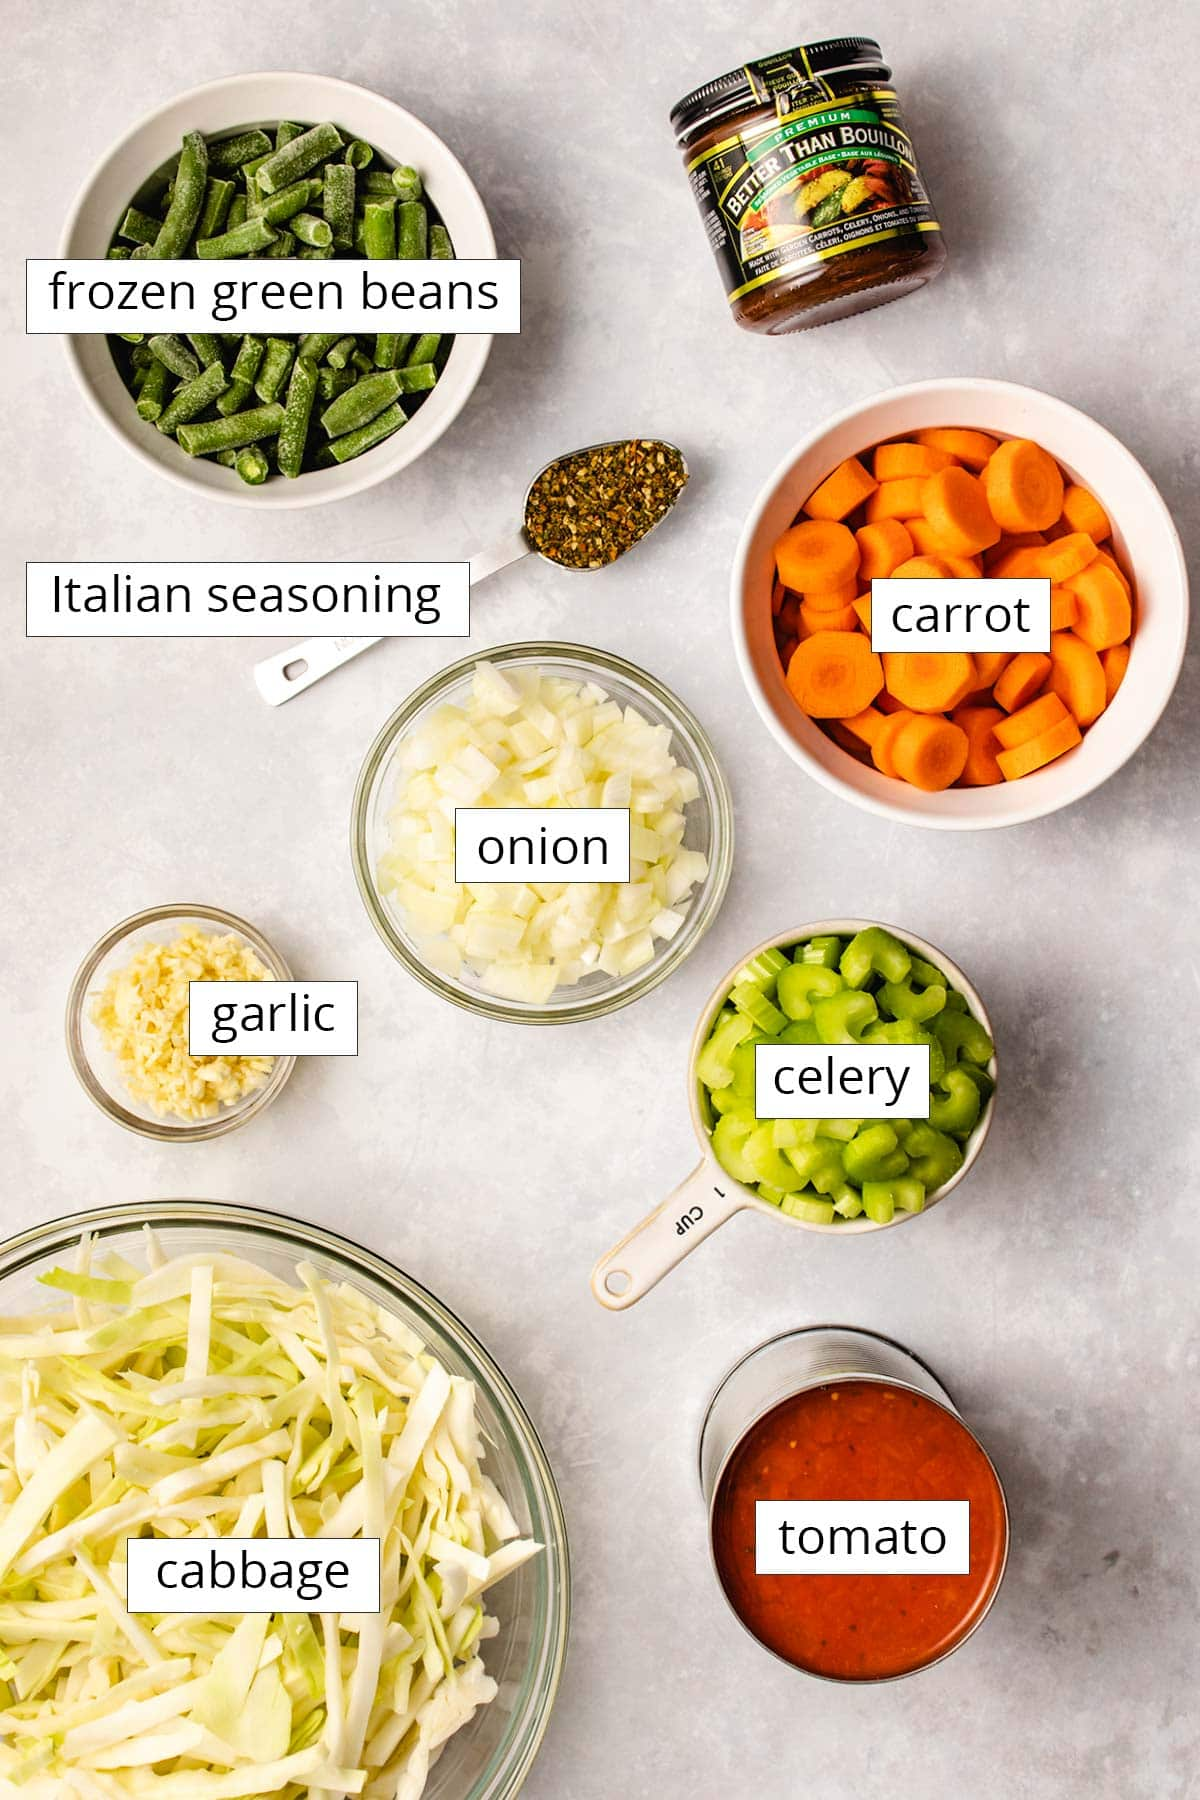 Ingredients for Instant Pot Cabbage Soup viewed from overhead.